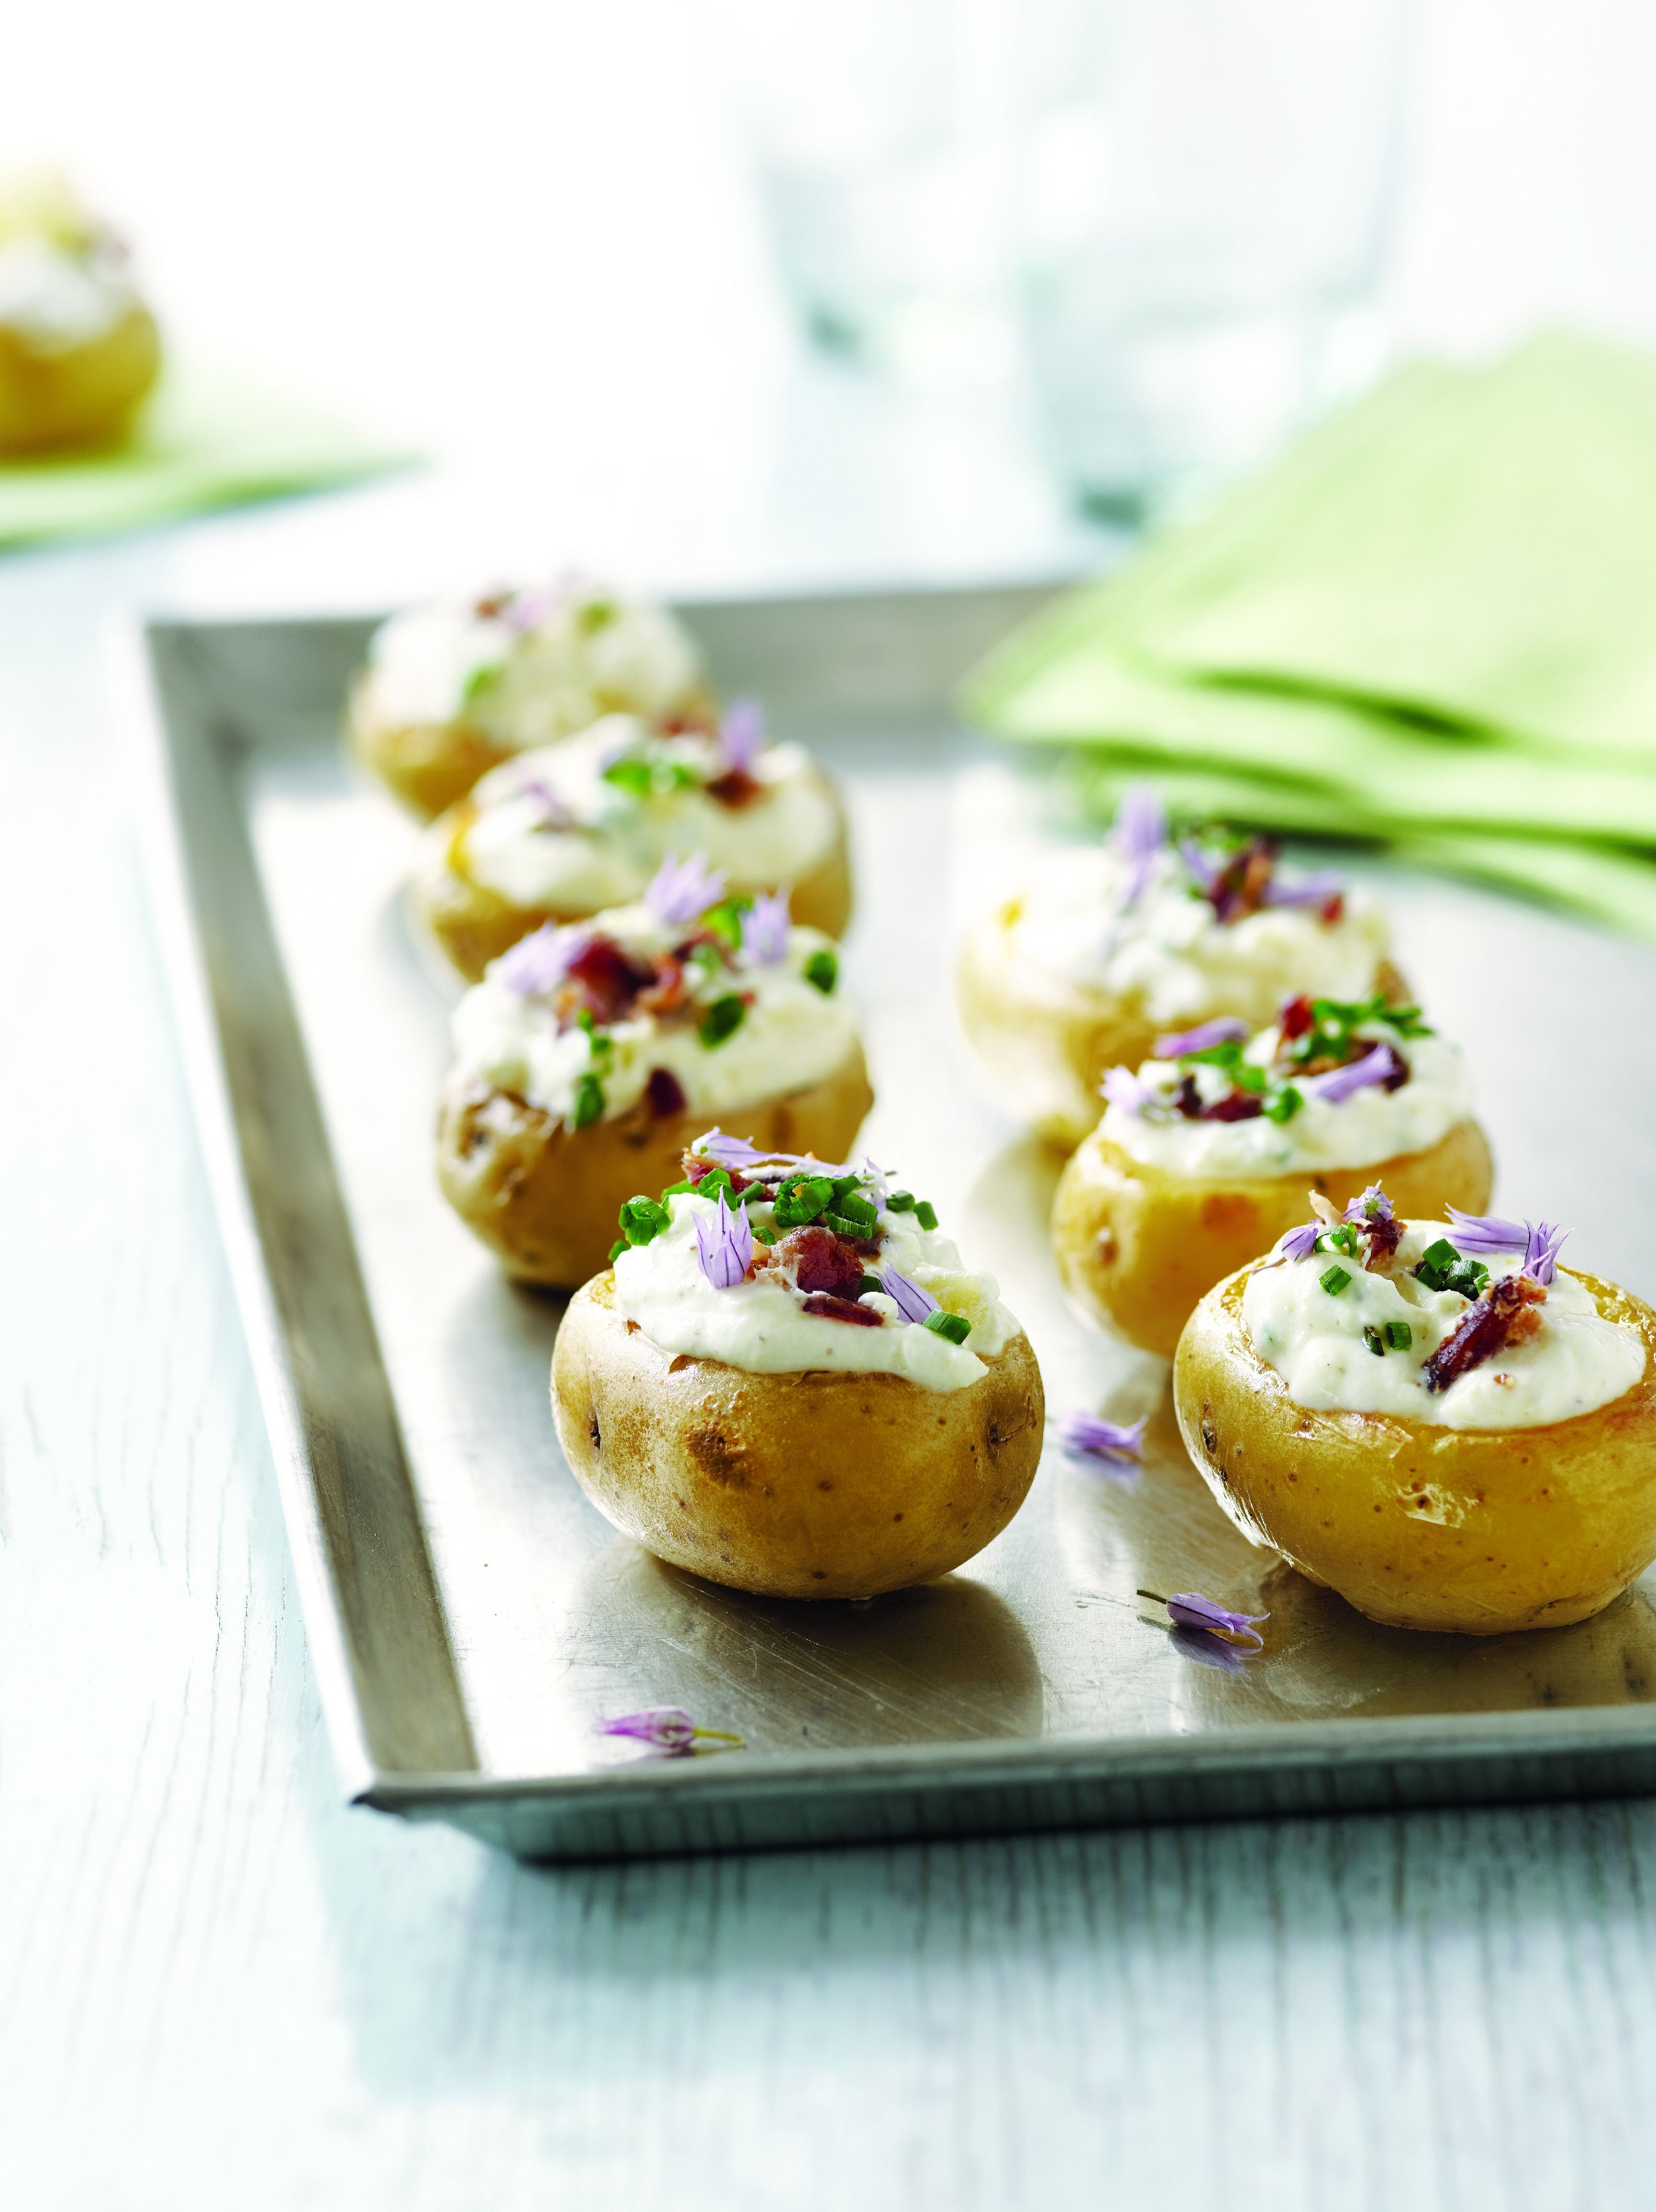 """As inspiration for your """"Festive First Bites"""" entry to the Fast Festive Fun with Sandra Lee Contest checkout my Crispy Baby Potato Bites With Sour Cream And Bacon! Click through pic for recipe on SandraLee.com then find out how you could enter and WIN great prizes from Verizon and I at http://www.verizoninsider.com/sandralee?cmp=SOC-PT-SL-1113-image3"""